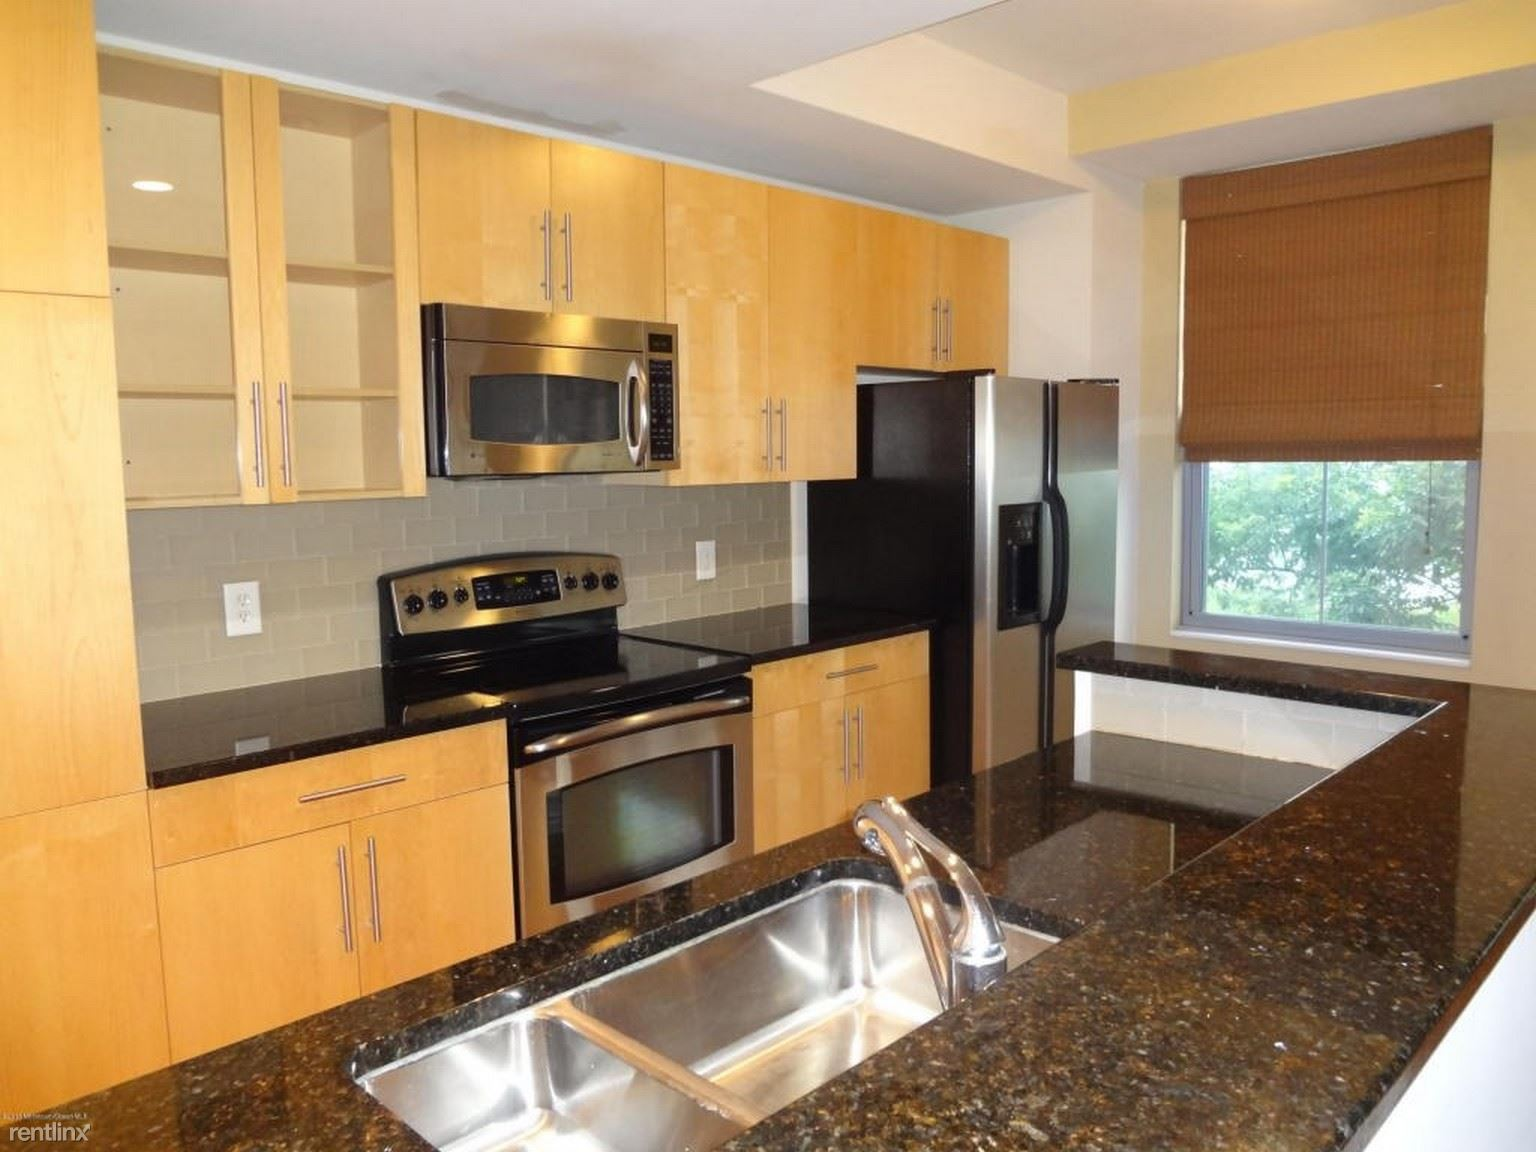 Apartment for Rent in Jersey City